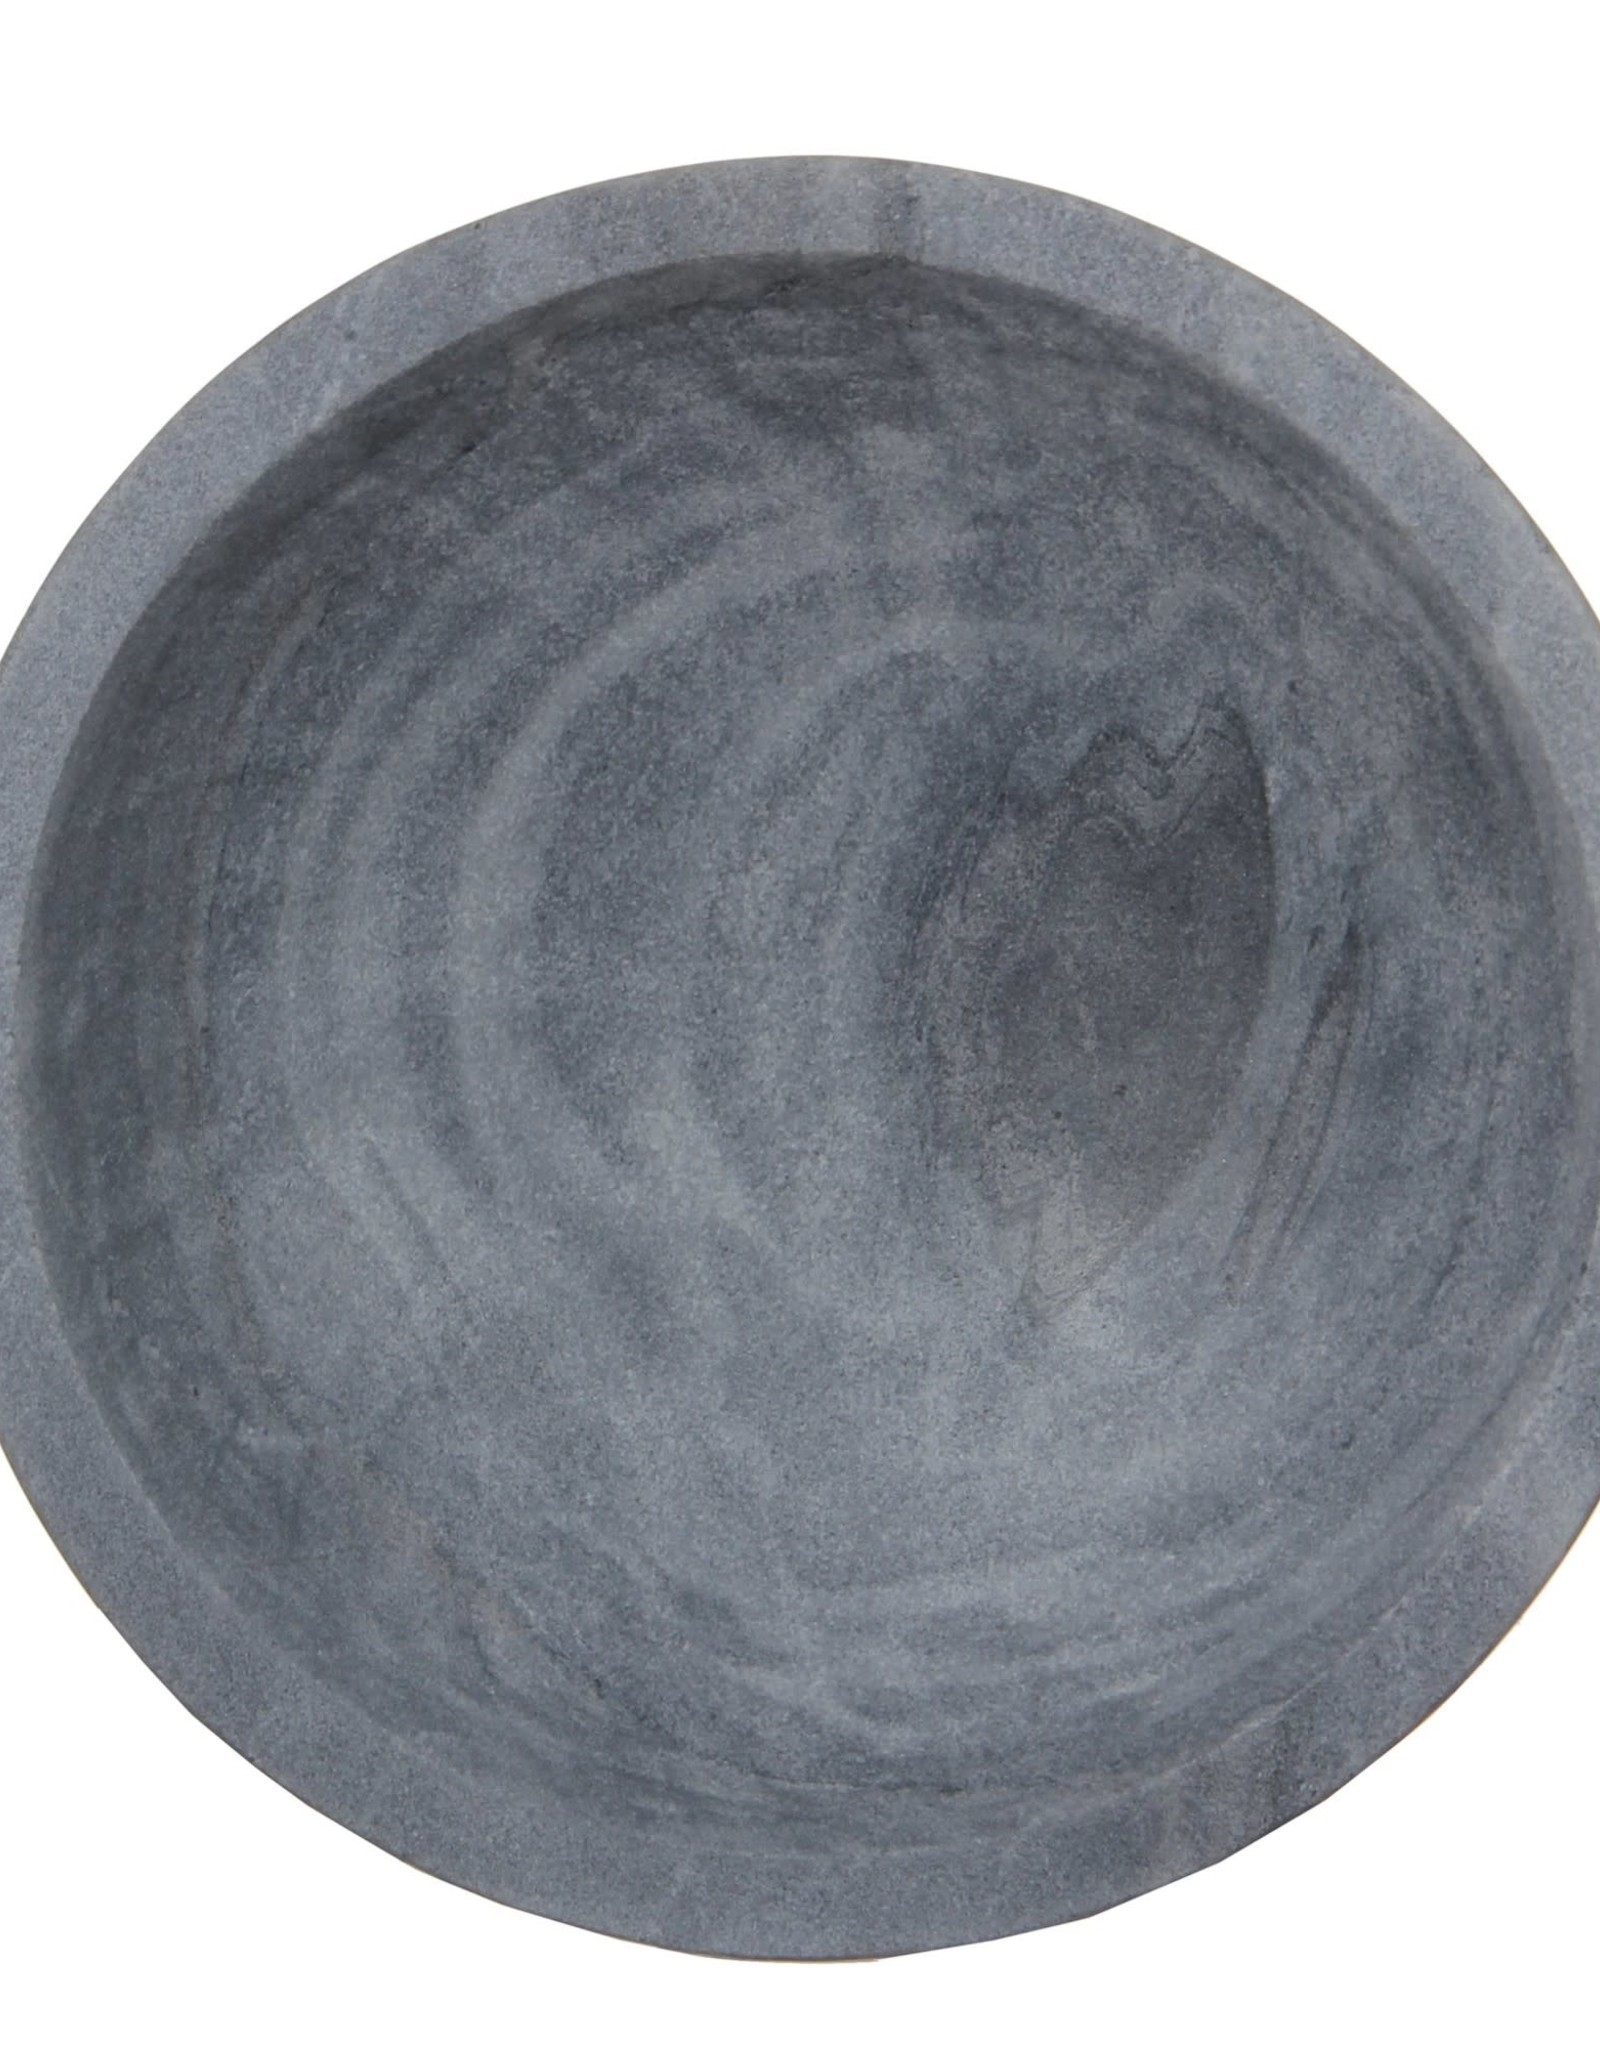 Stone Bowl Grey - Large